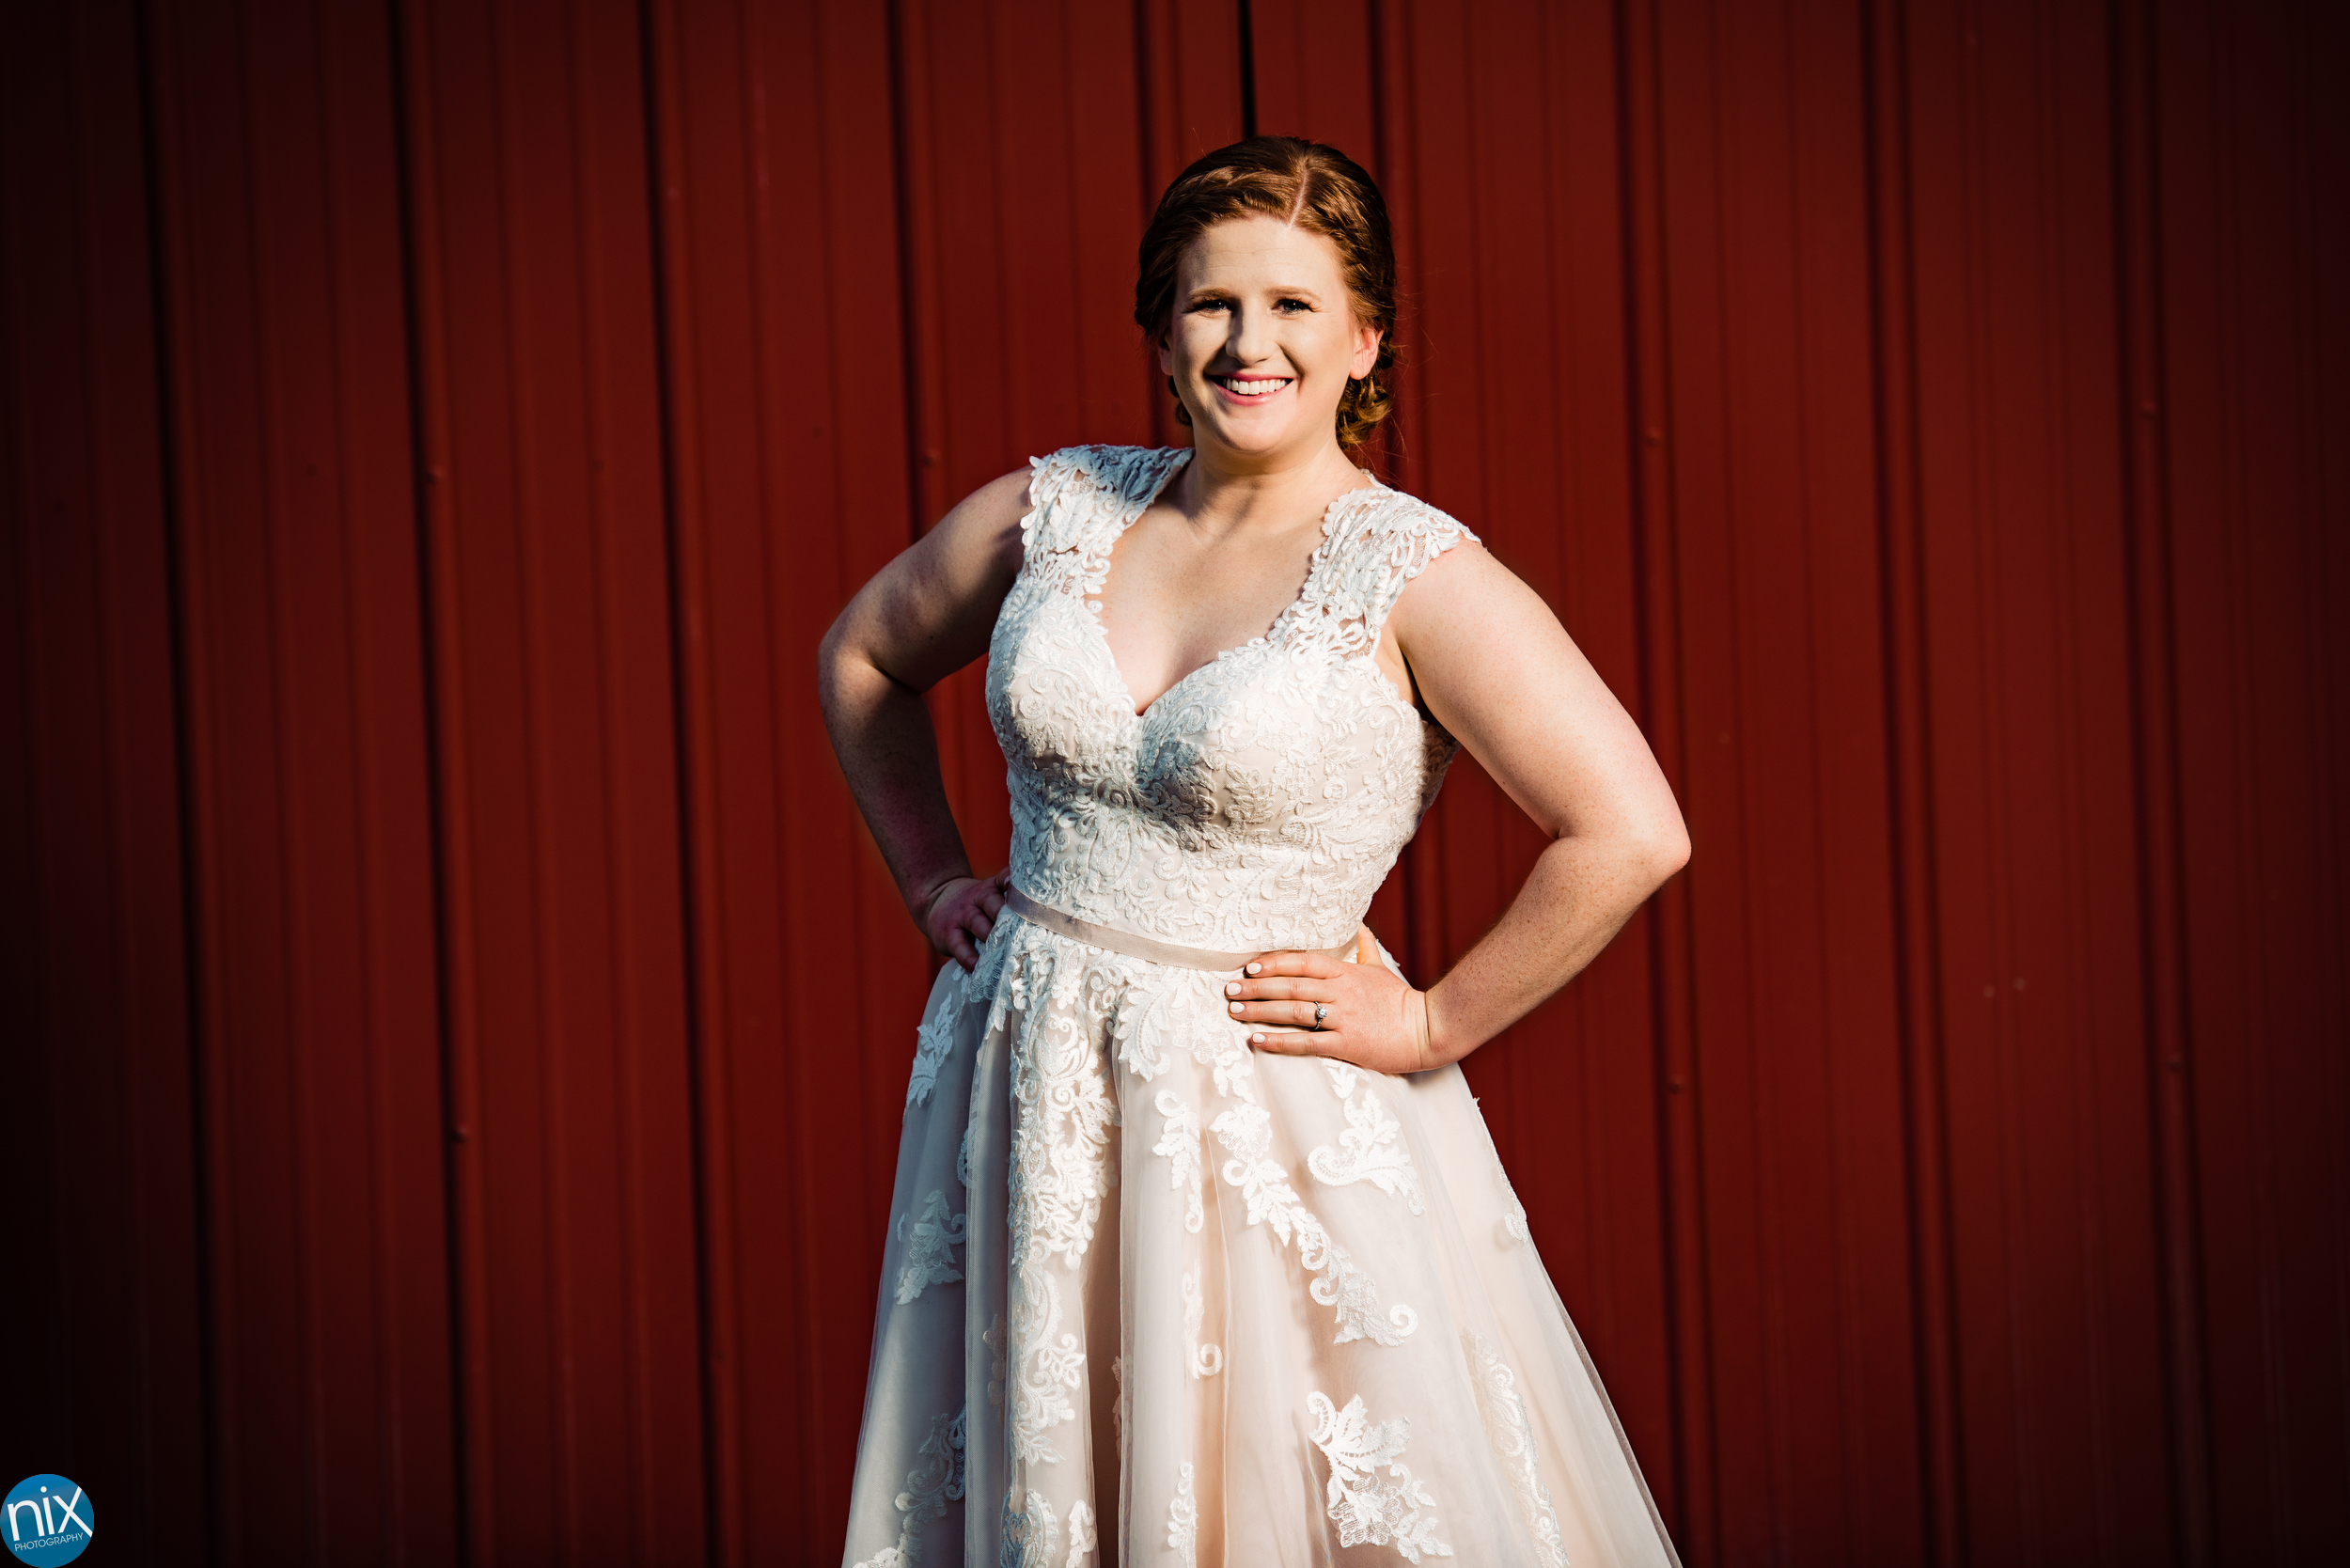 bride in wedding dress with red barn.jpg